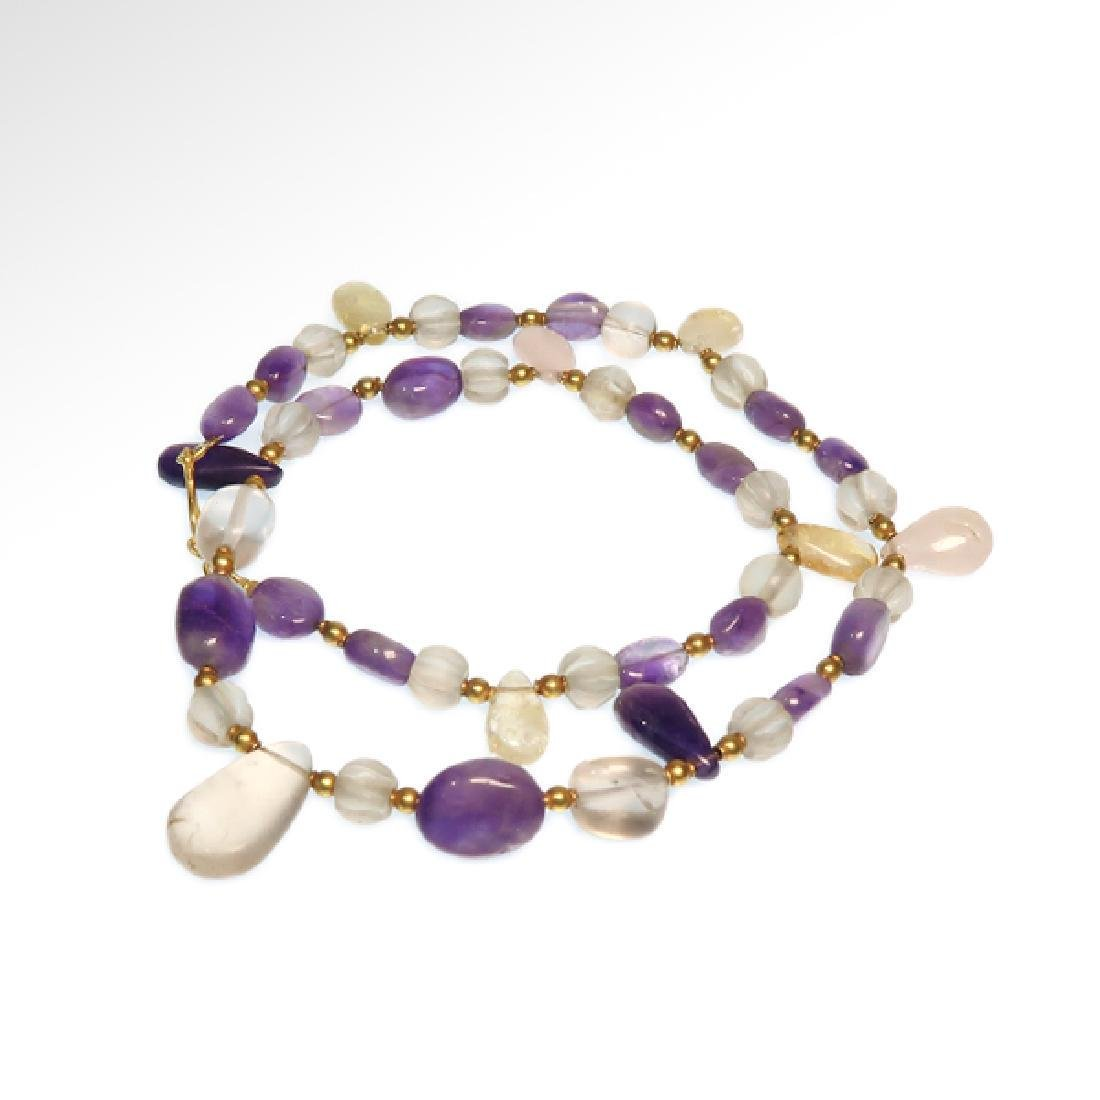 Roman Amethyst, Crystal and Gold Necklace, 2nd Cent AD